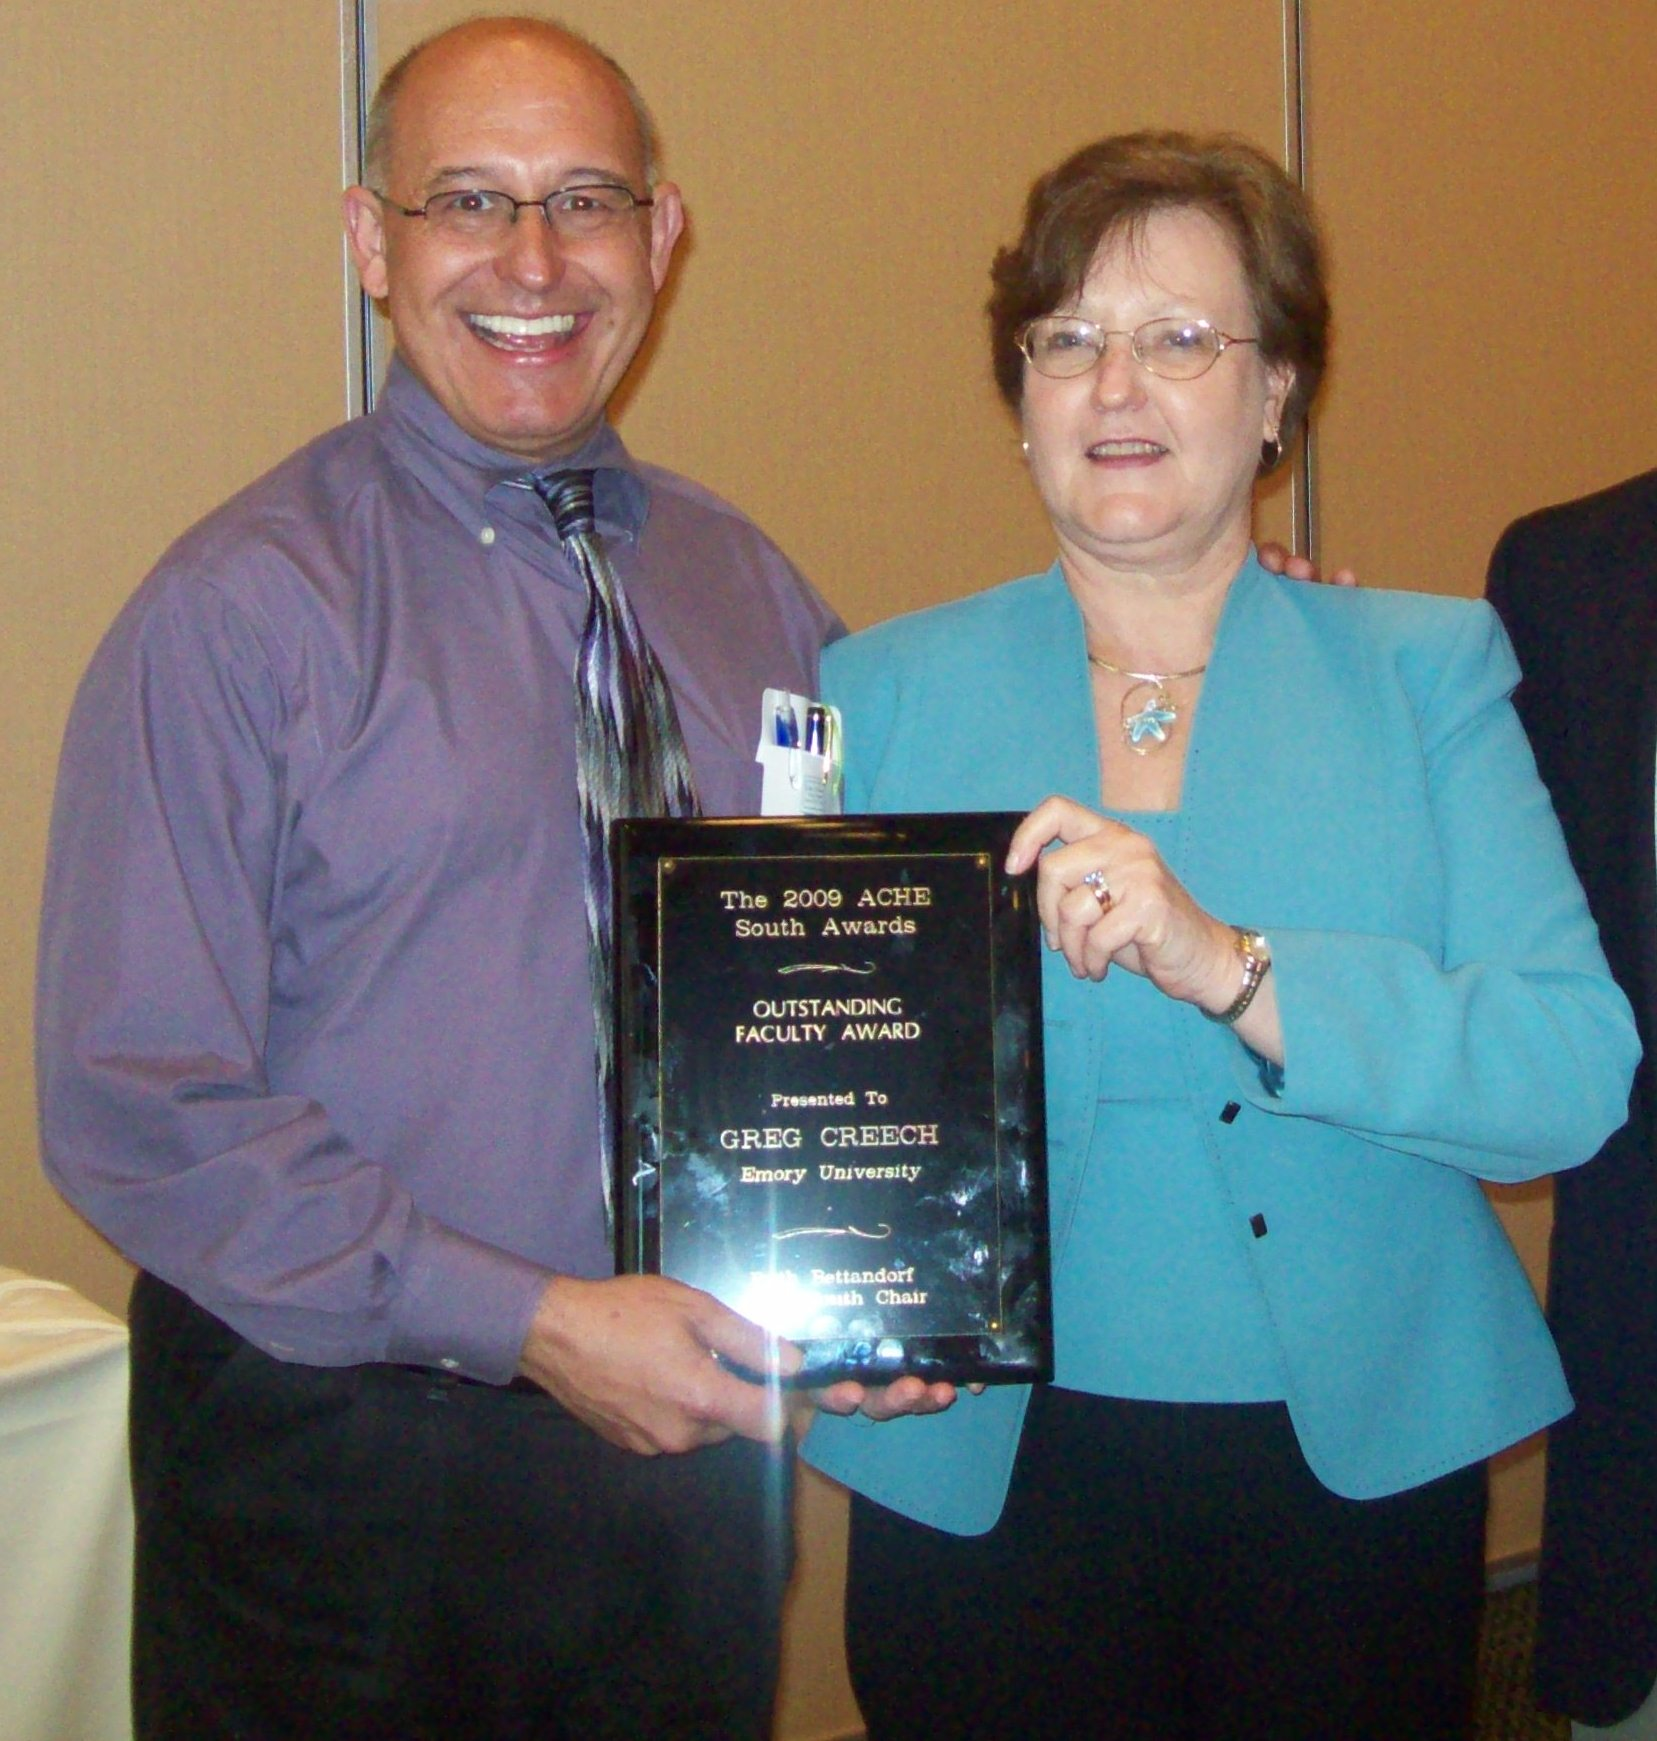 Accepting the 2009 Outstanding Faculty Award presented by Dr. Ruth Bettandorff representing the Southern Region of the Association of Continuing Higher Education.